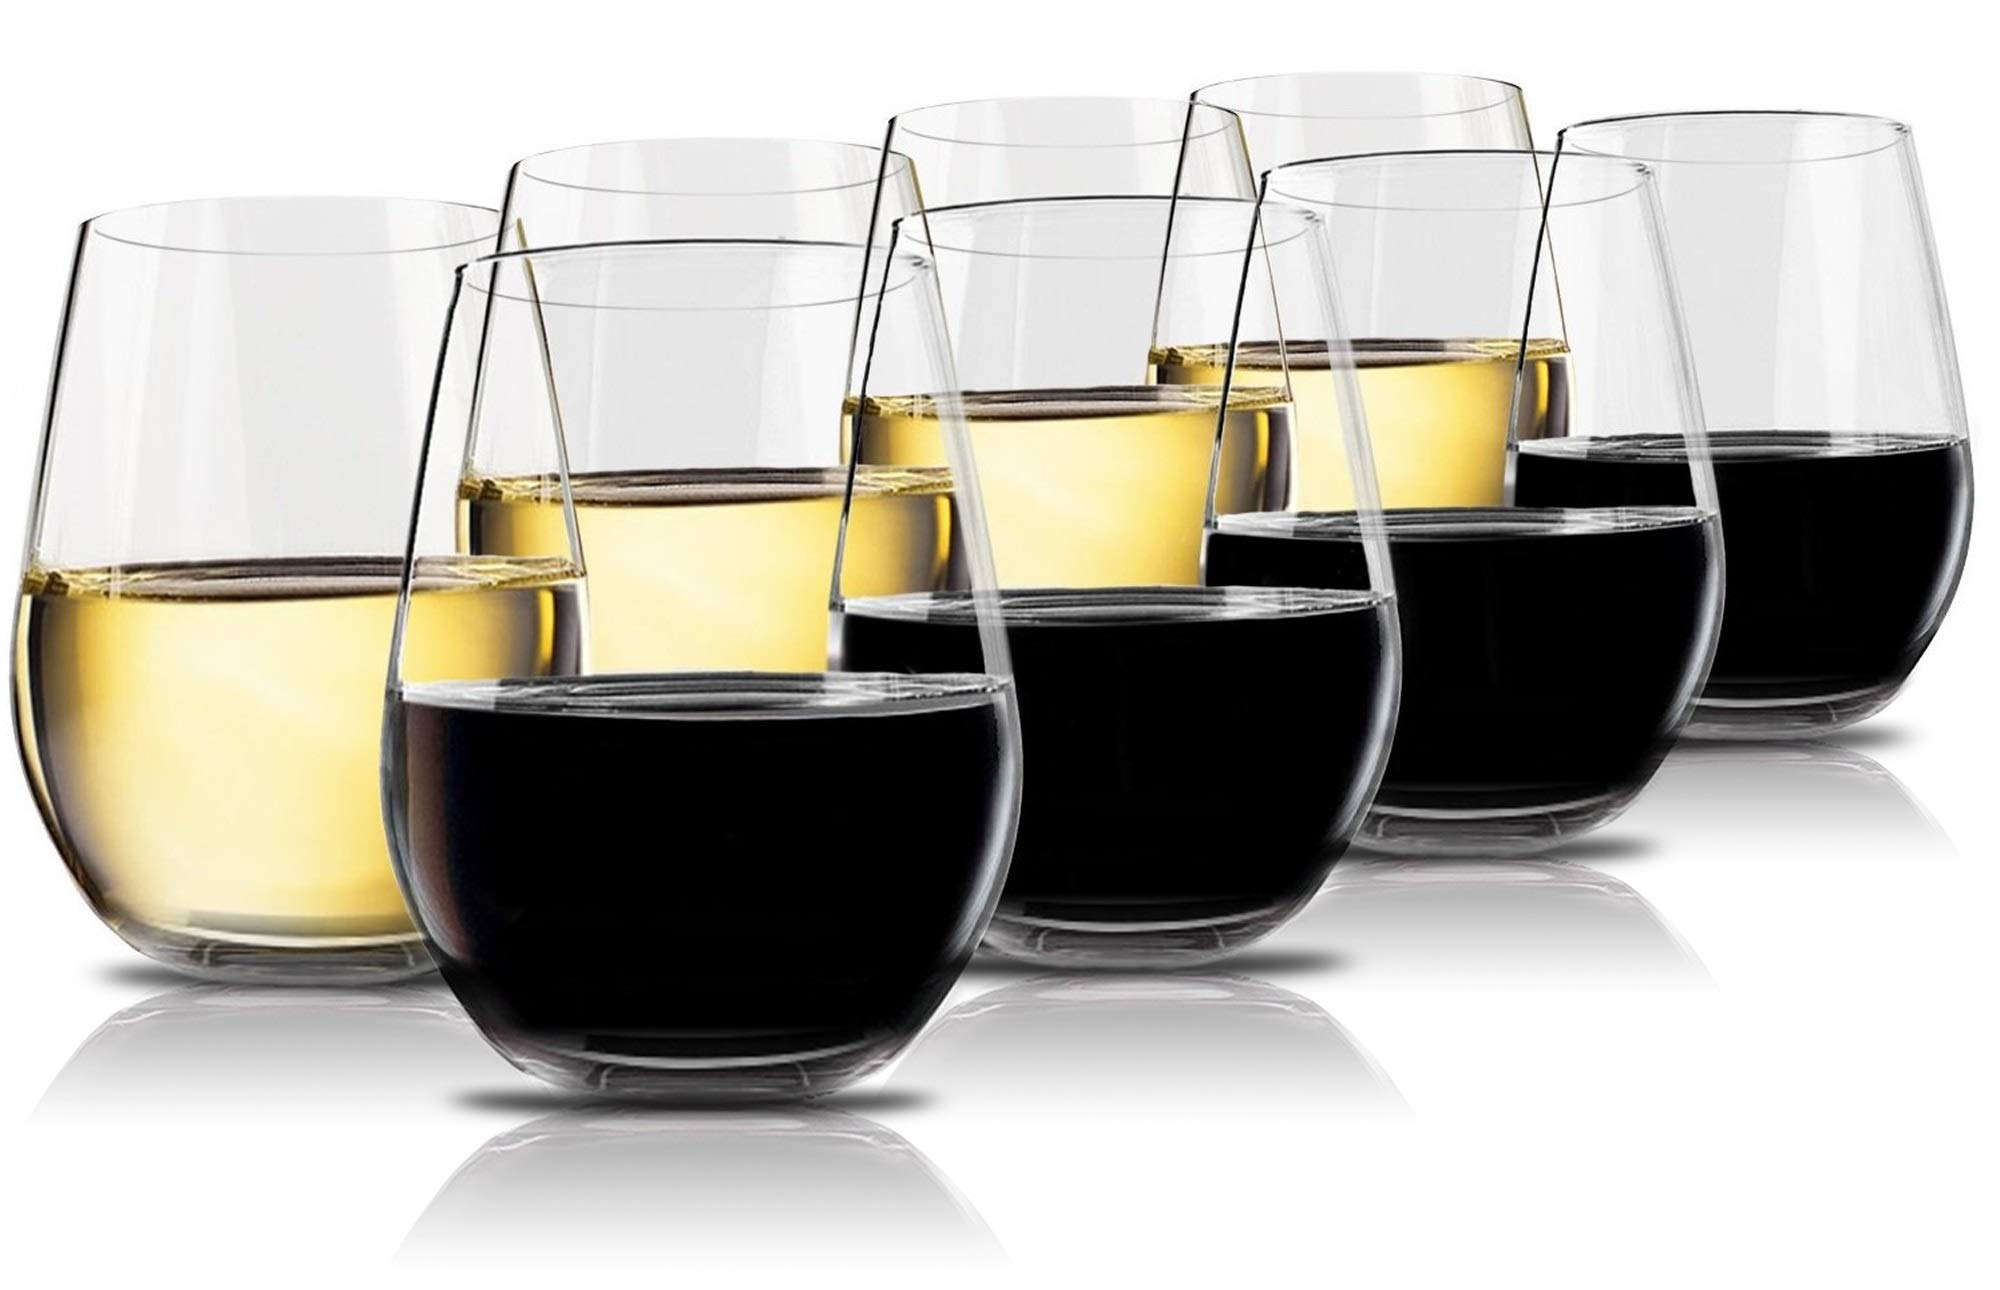 Vivocci Unbreakable Plastic Stemless Wine Glasses 20 oz | 100% Tritan Heavy Base | Shatterproof Glassware | Ideal For Cocktails & Scotch | Perfect For Homes & Bars | Dishwasher Safe | Buy 8 Pay 6 by Vivocci